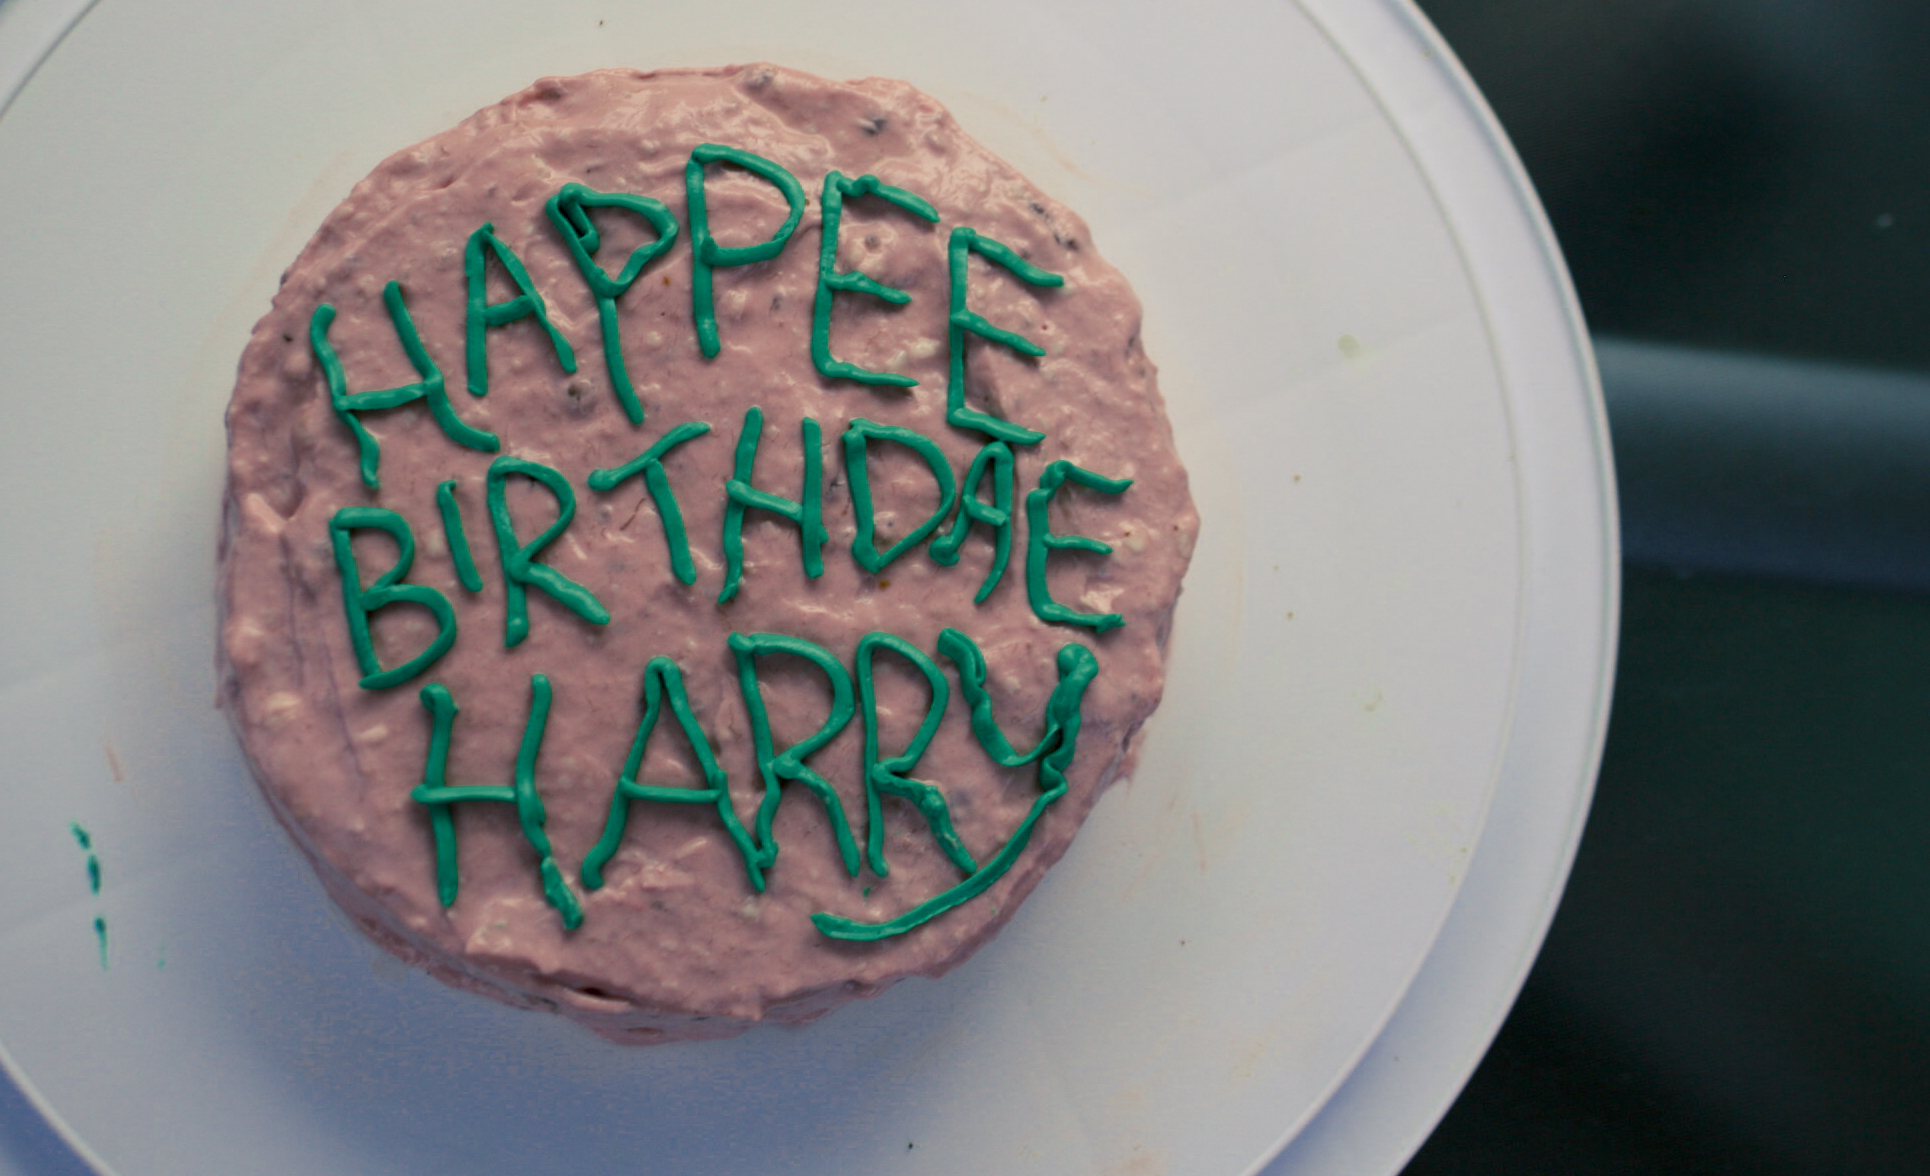 Happy Birthday Harry Potter Happee Birthdae